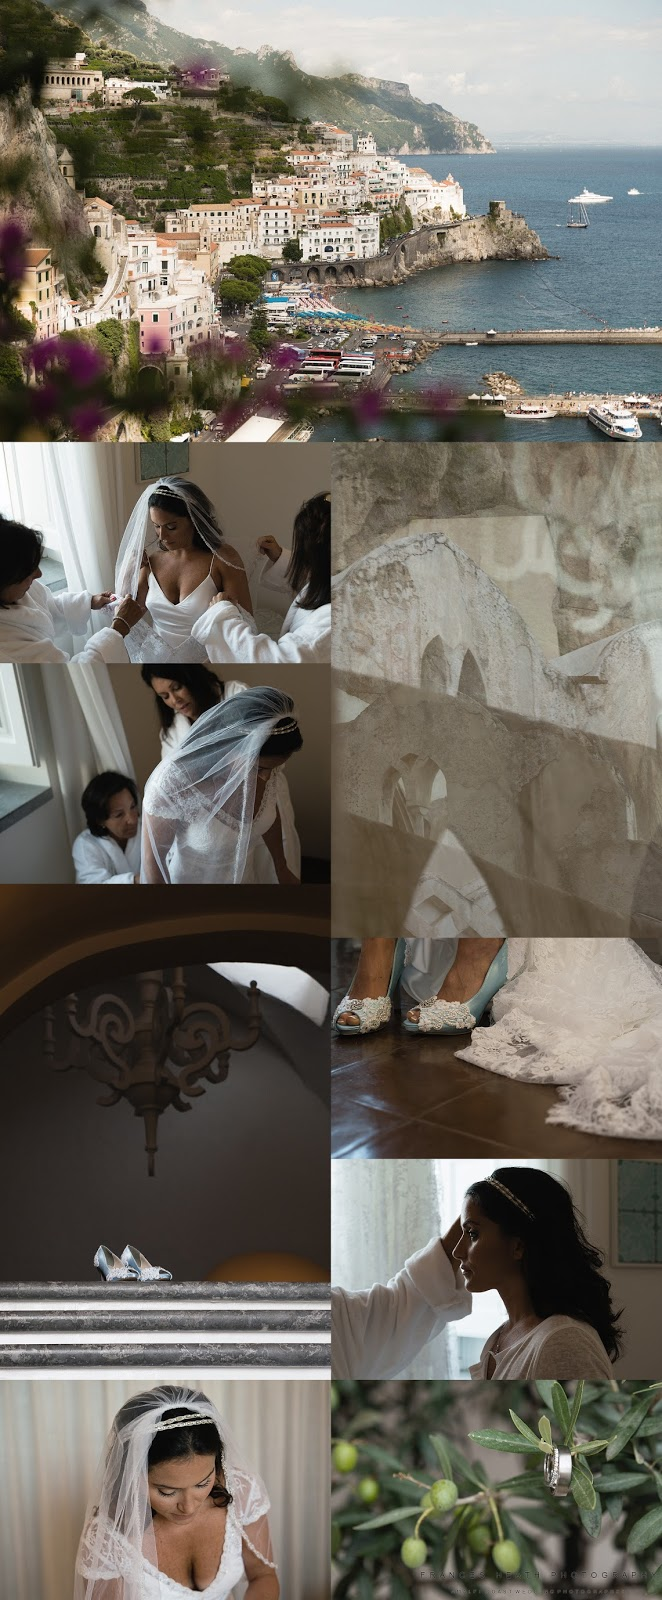 Bridal preparations at Hotel Convento in Amalfi